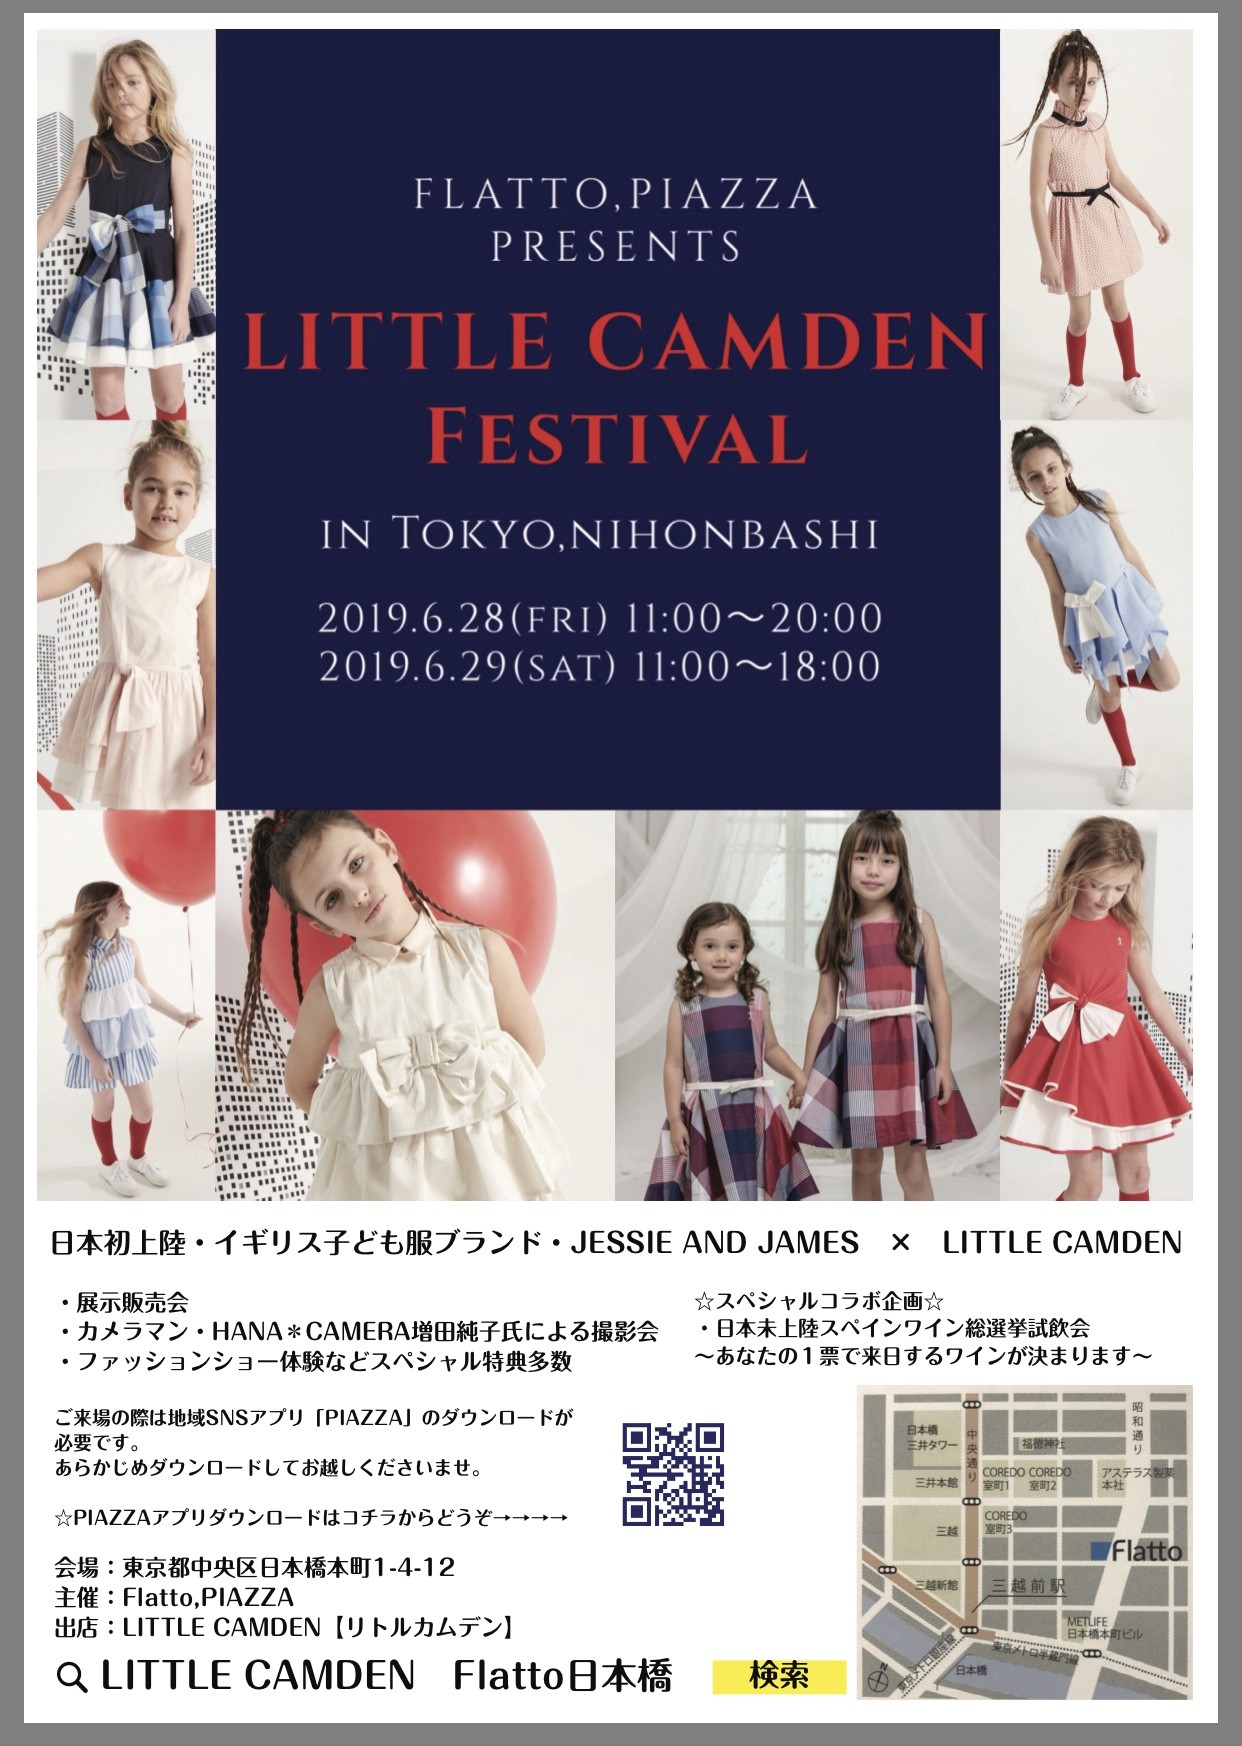 ②LITTLE CAMDEN FESTIVAL in Flatto日本橋 開催決定!!②